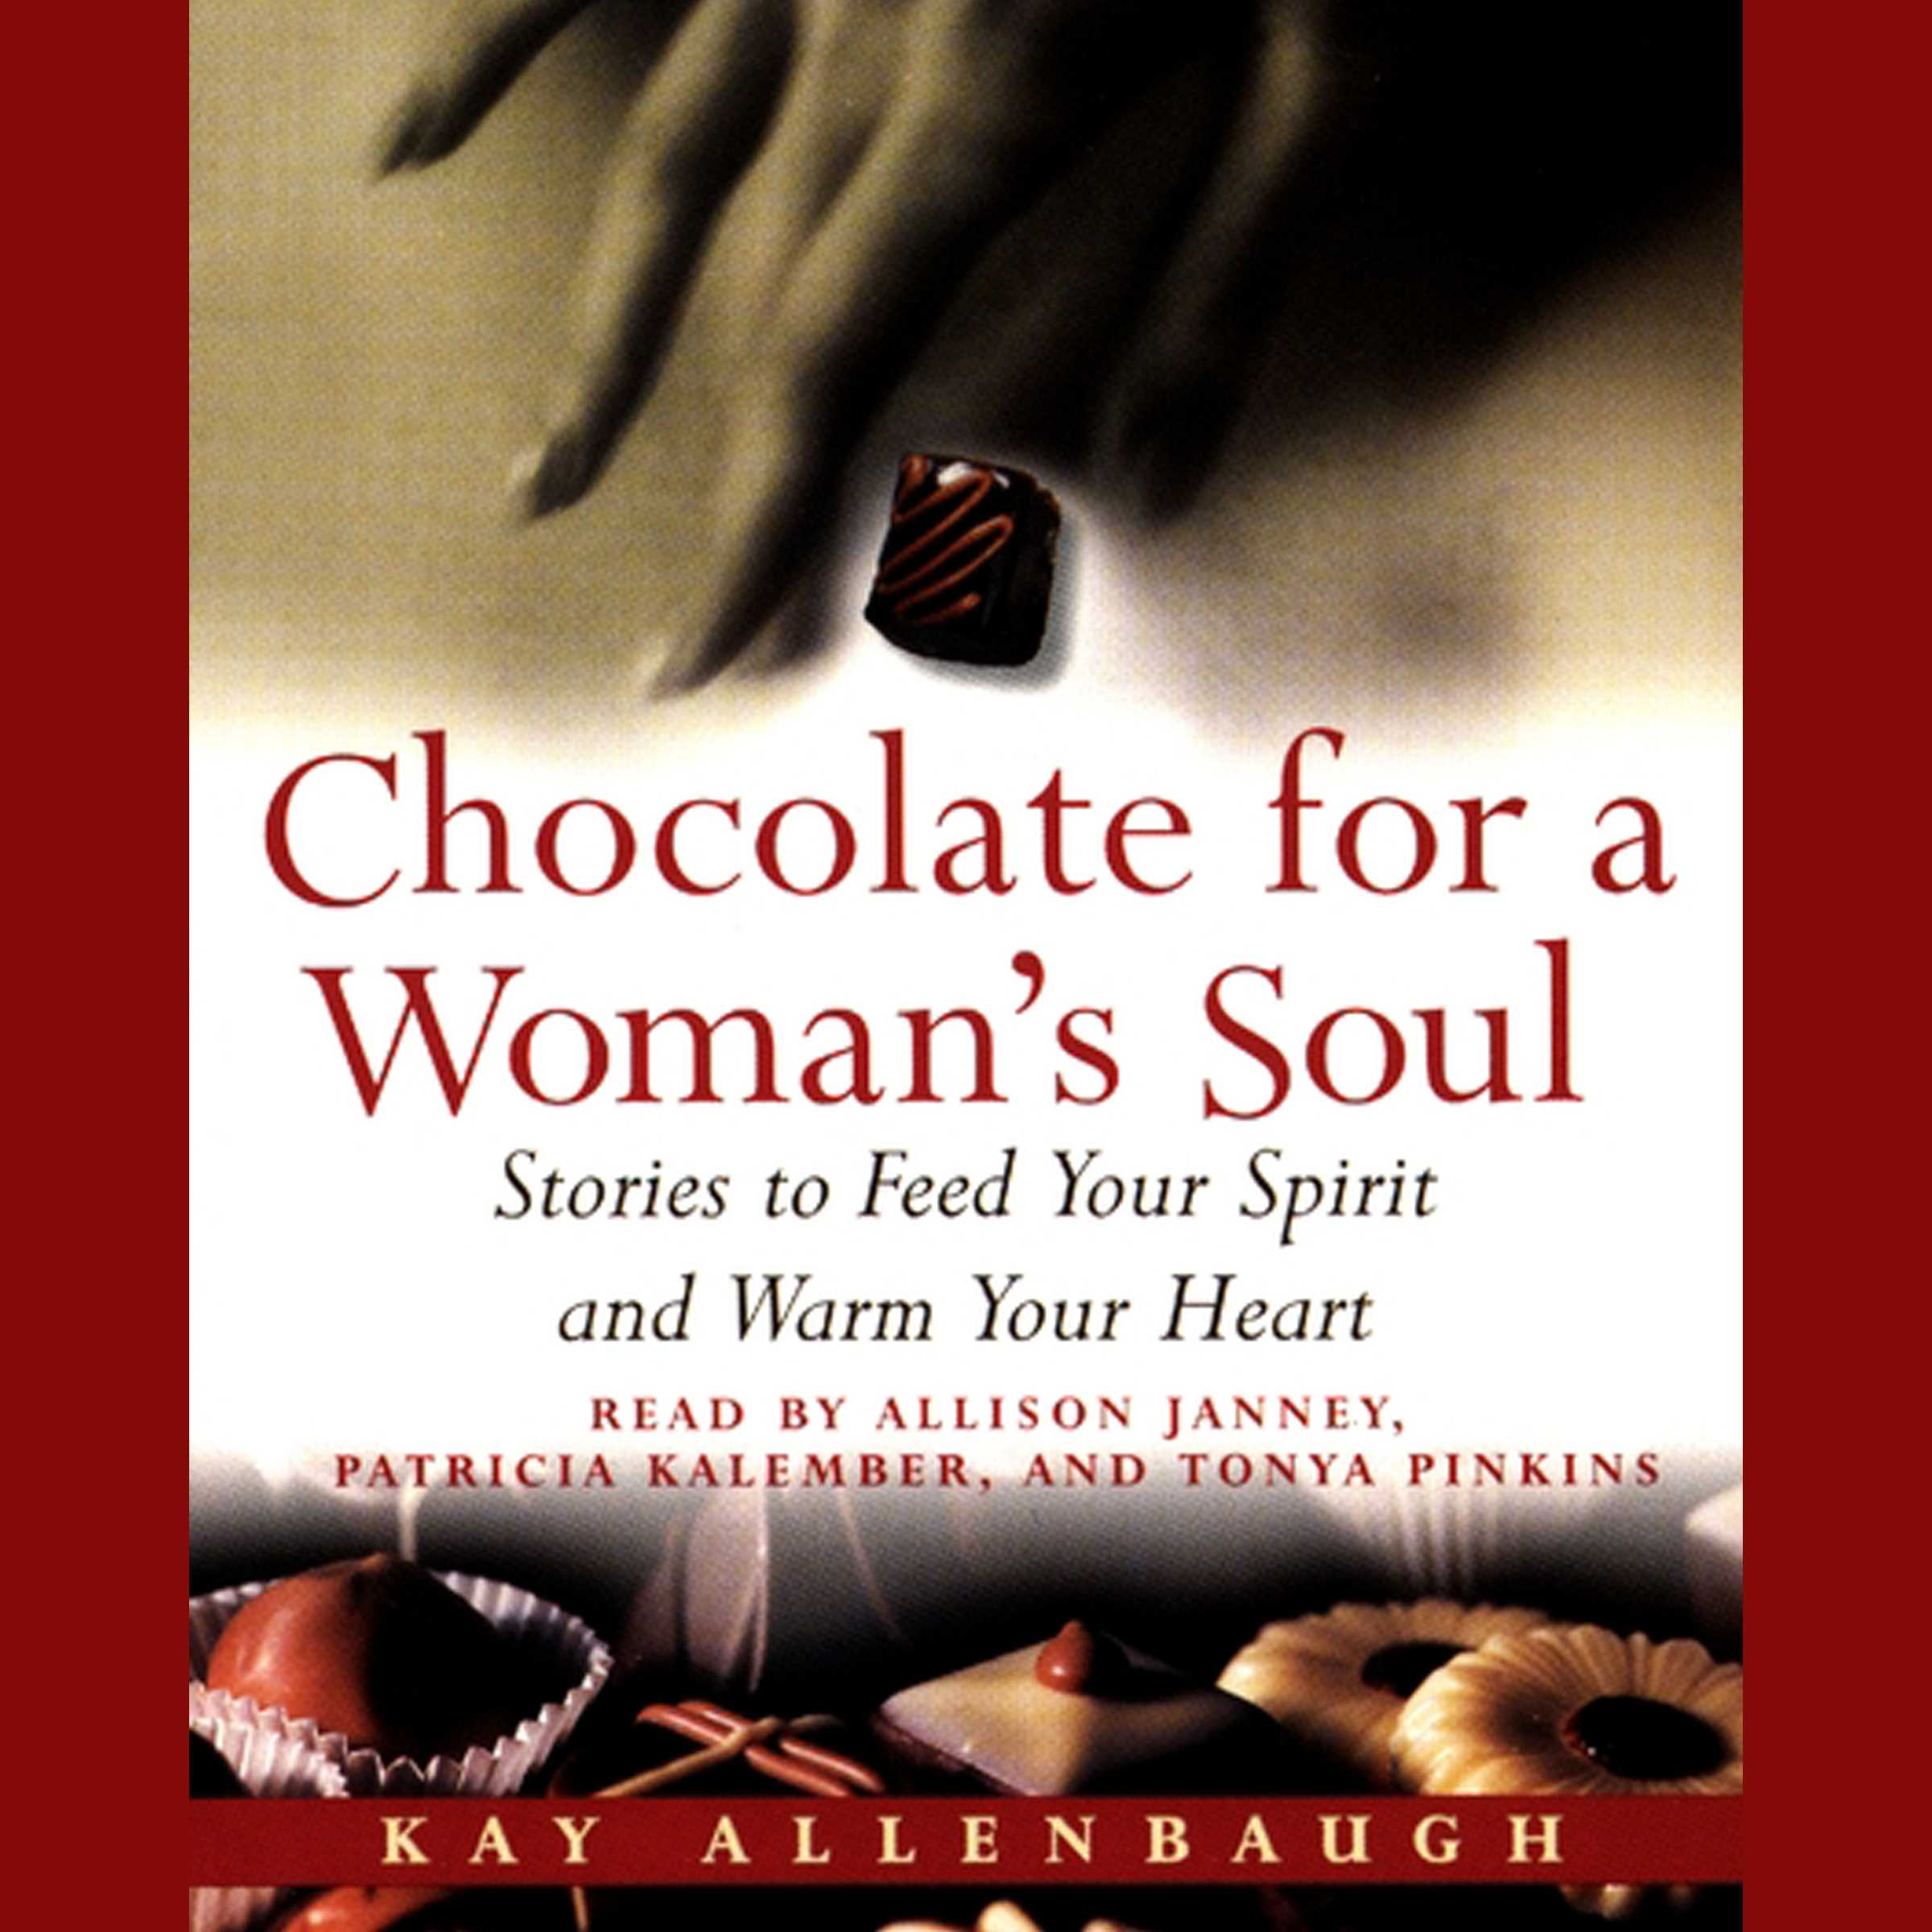 Chocolate-for-a-womans-soul-9780743542807_hr